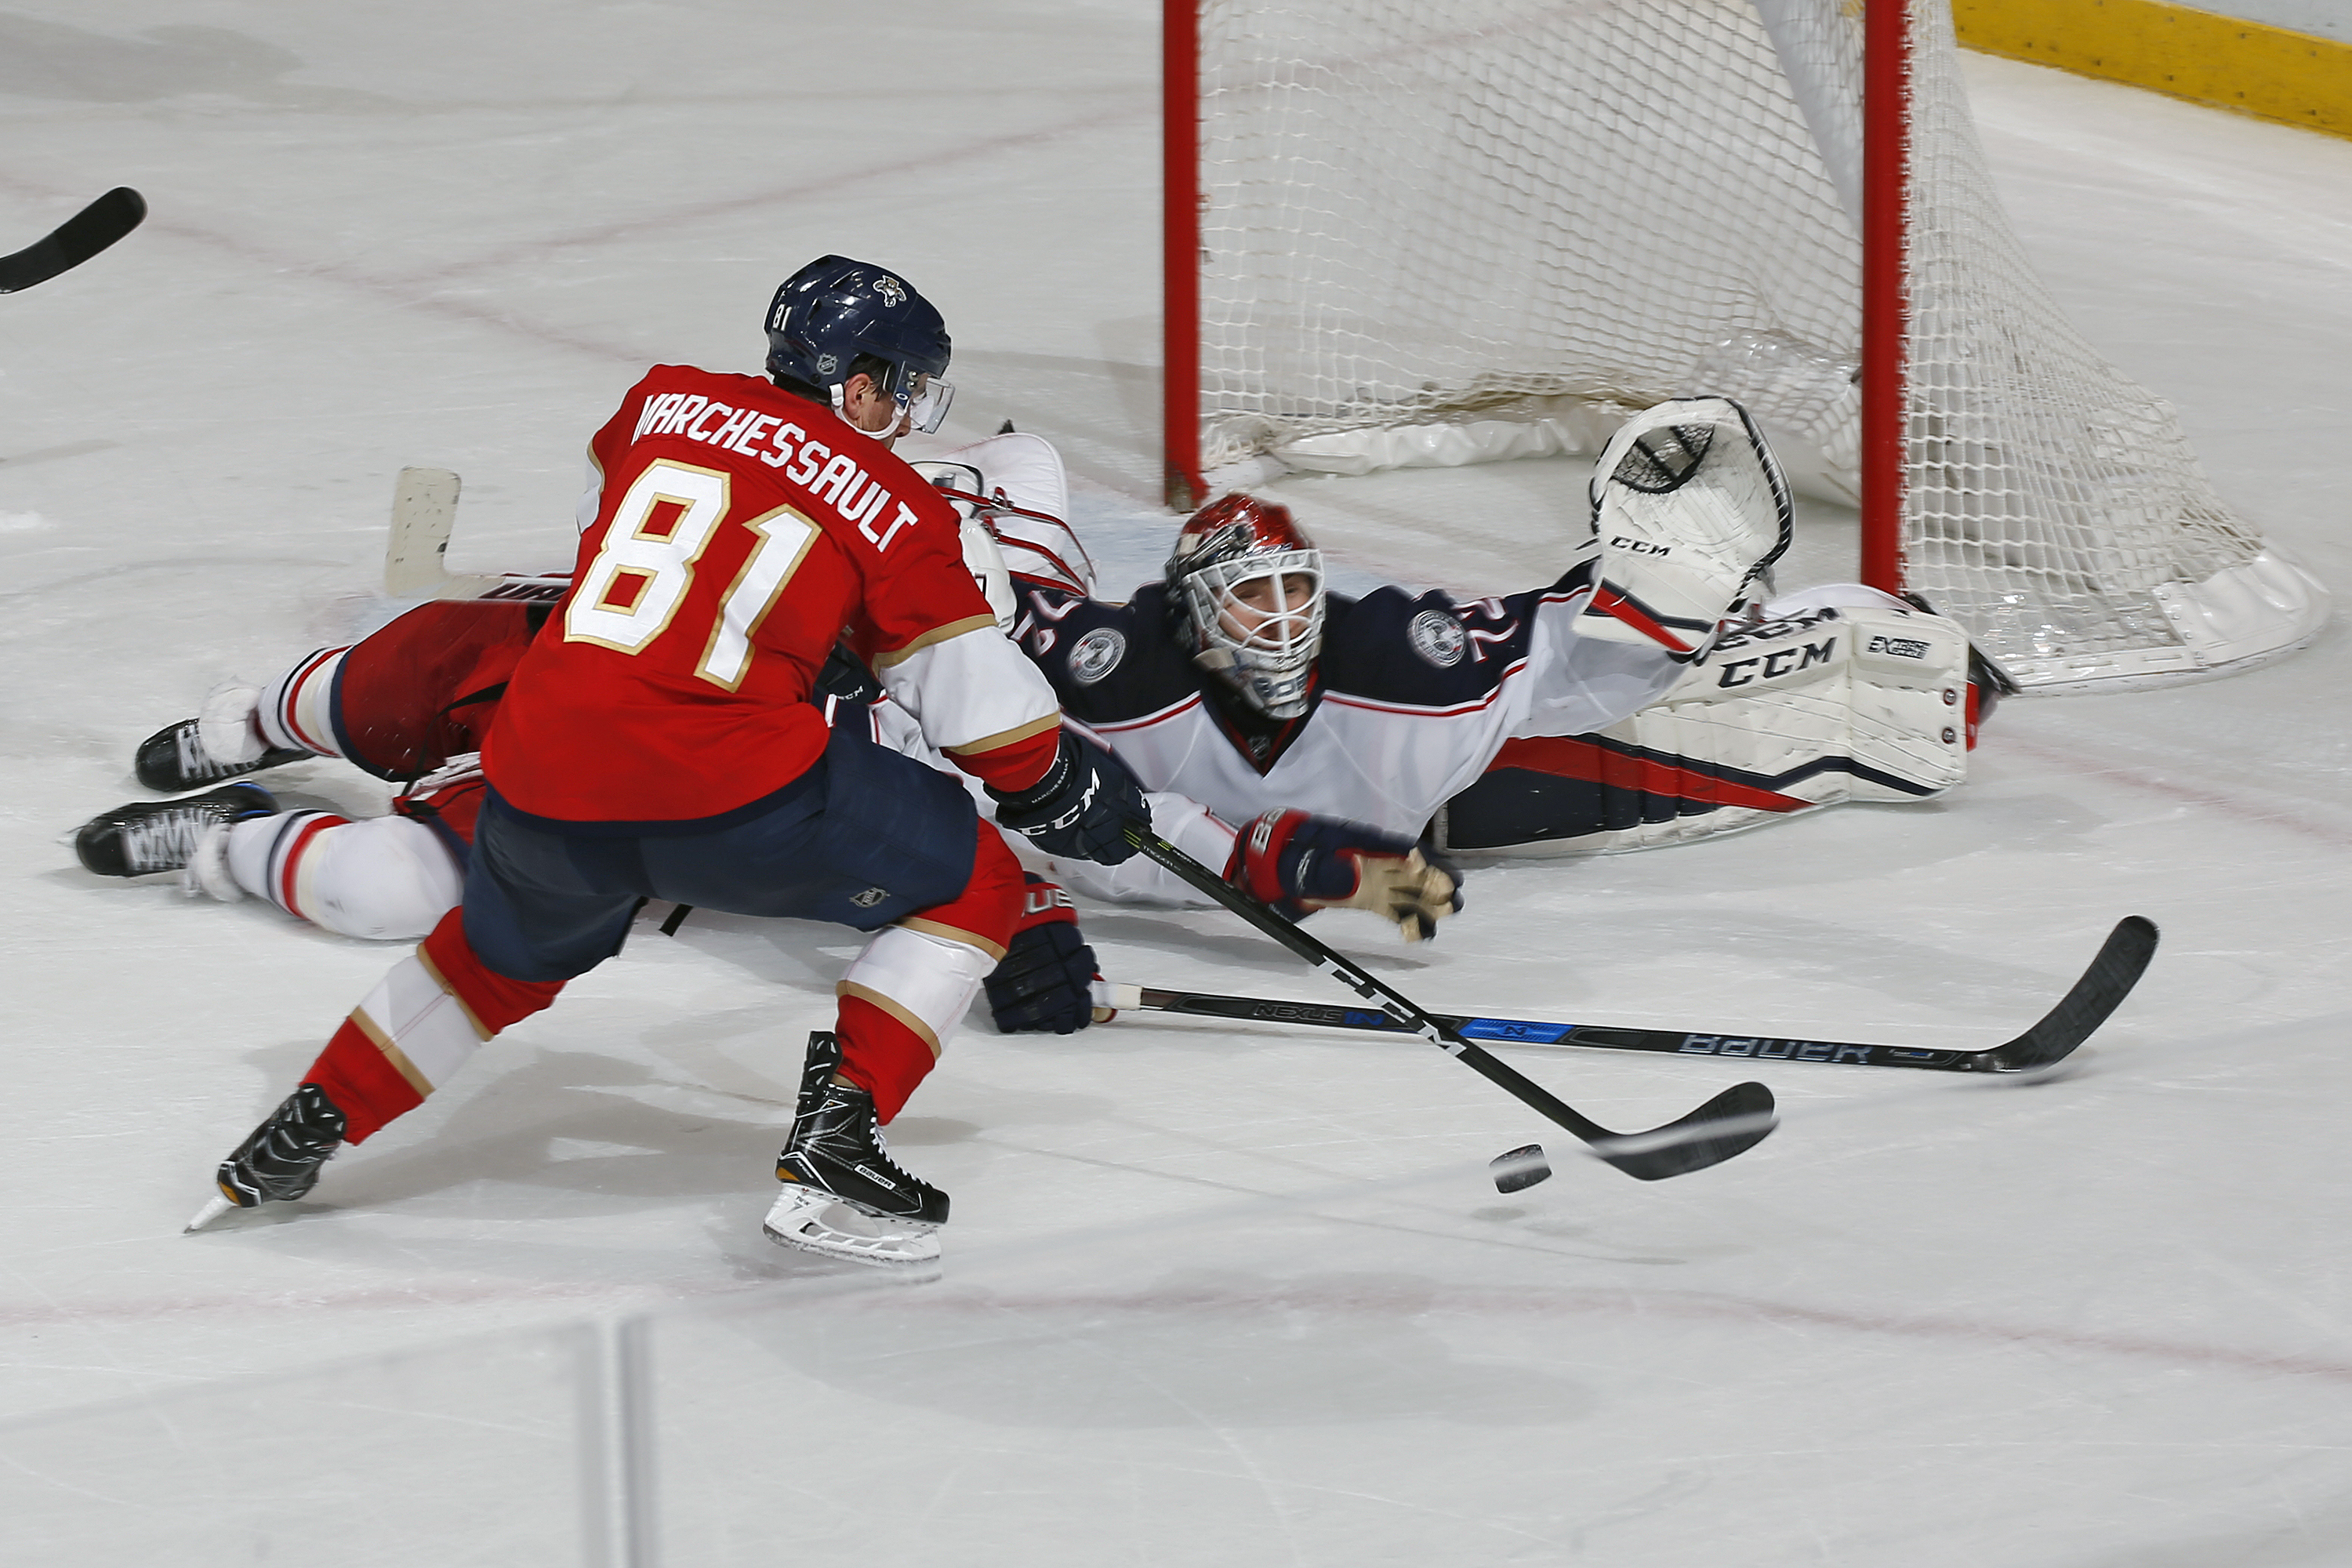 Blue Jackets are either good, lucky or doomed - SBNation.com